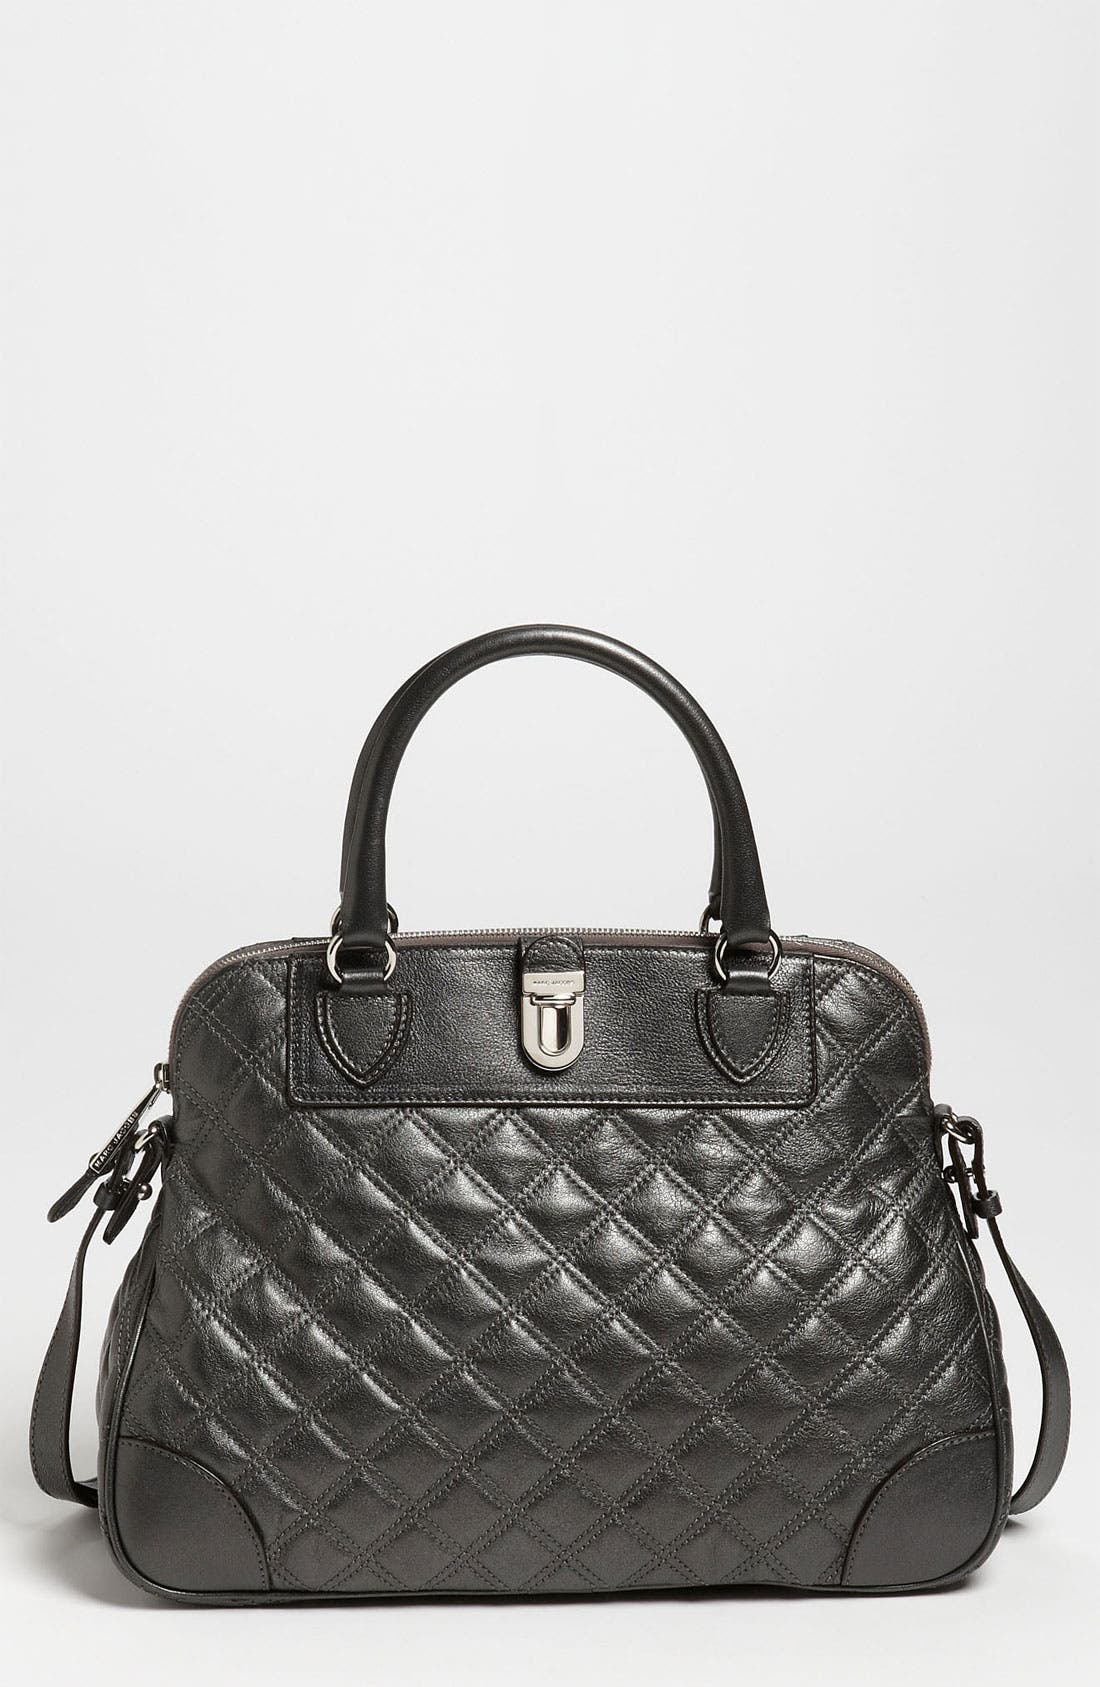 Alternate Image 1 Selected - MARC JACOBS 'Quilting Whitney' Leather Satchel